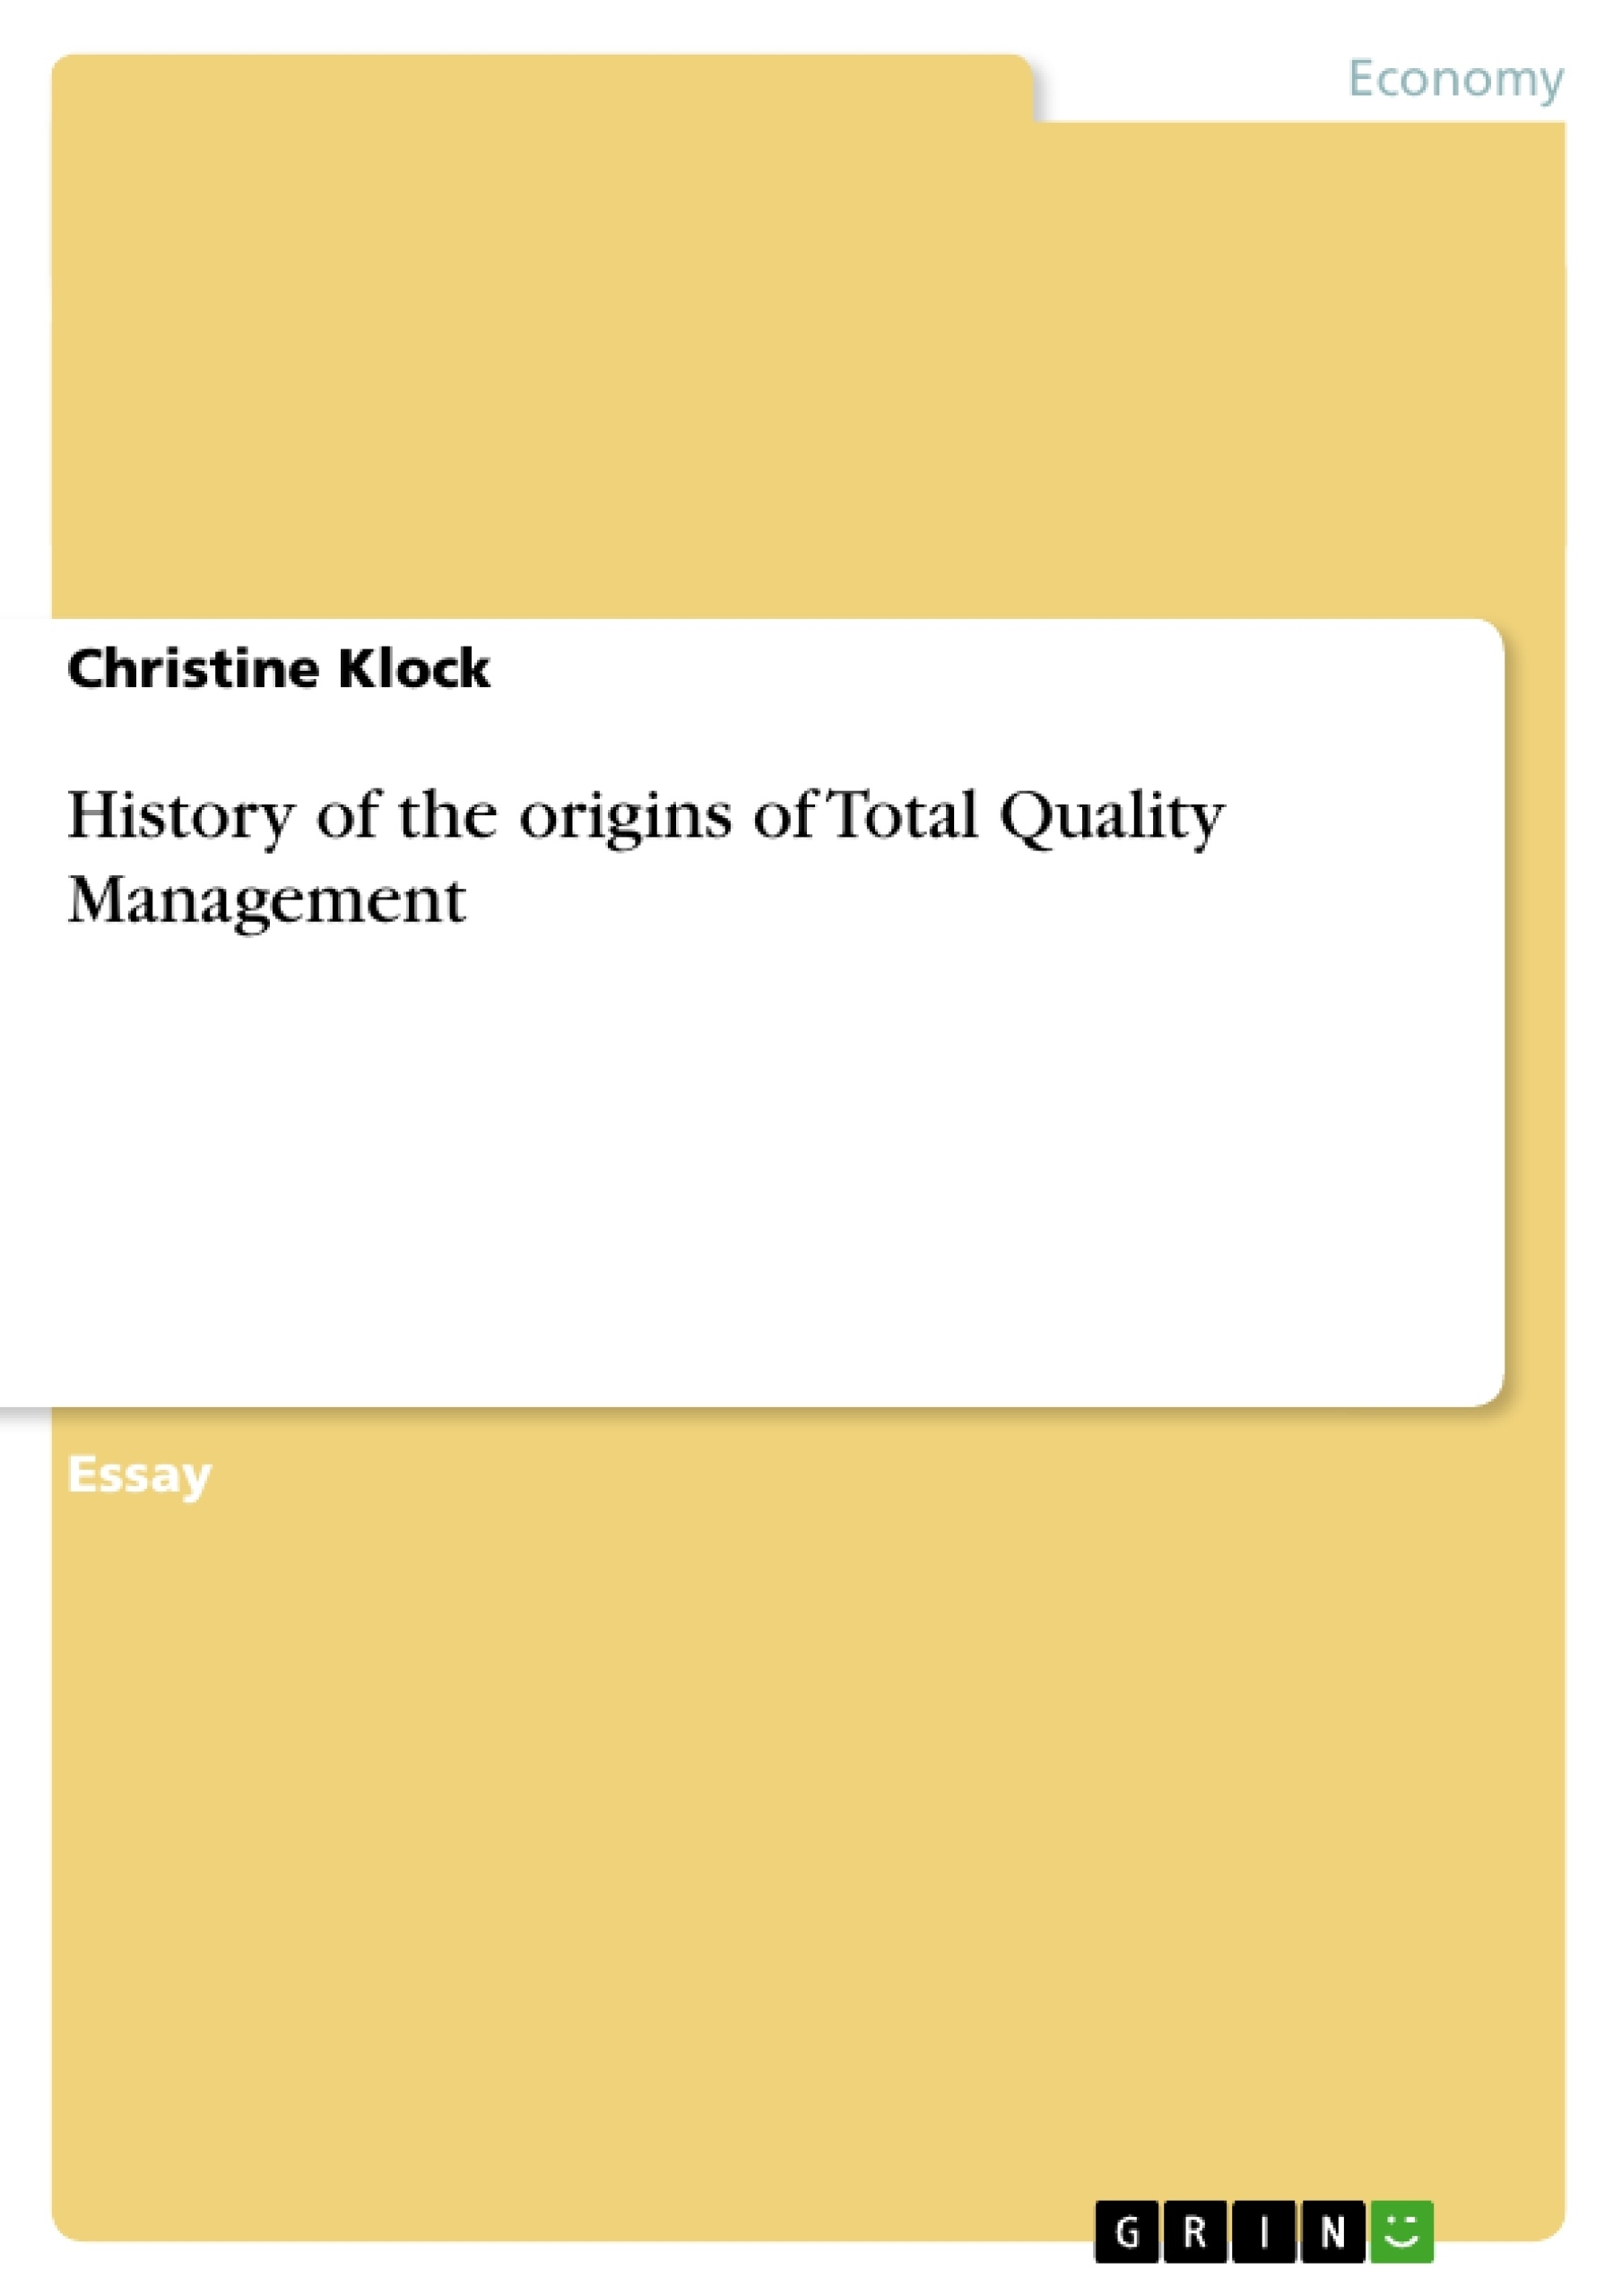 history of the origins of total quality management publish your upload your own papers earn money and win an iphone 7